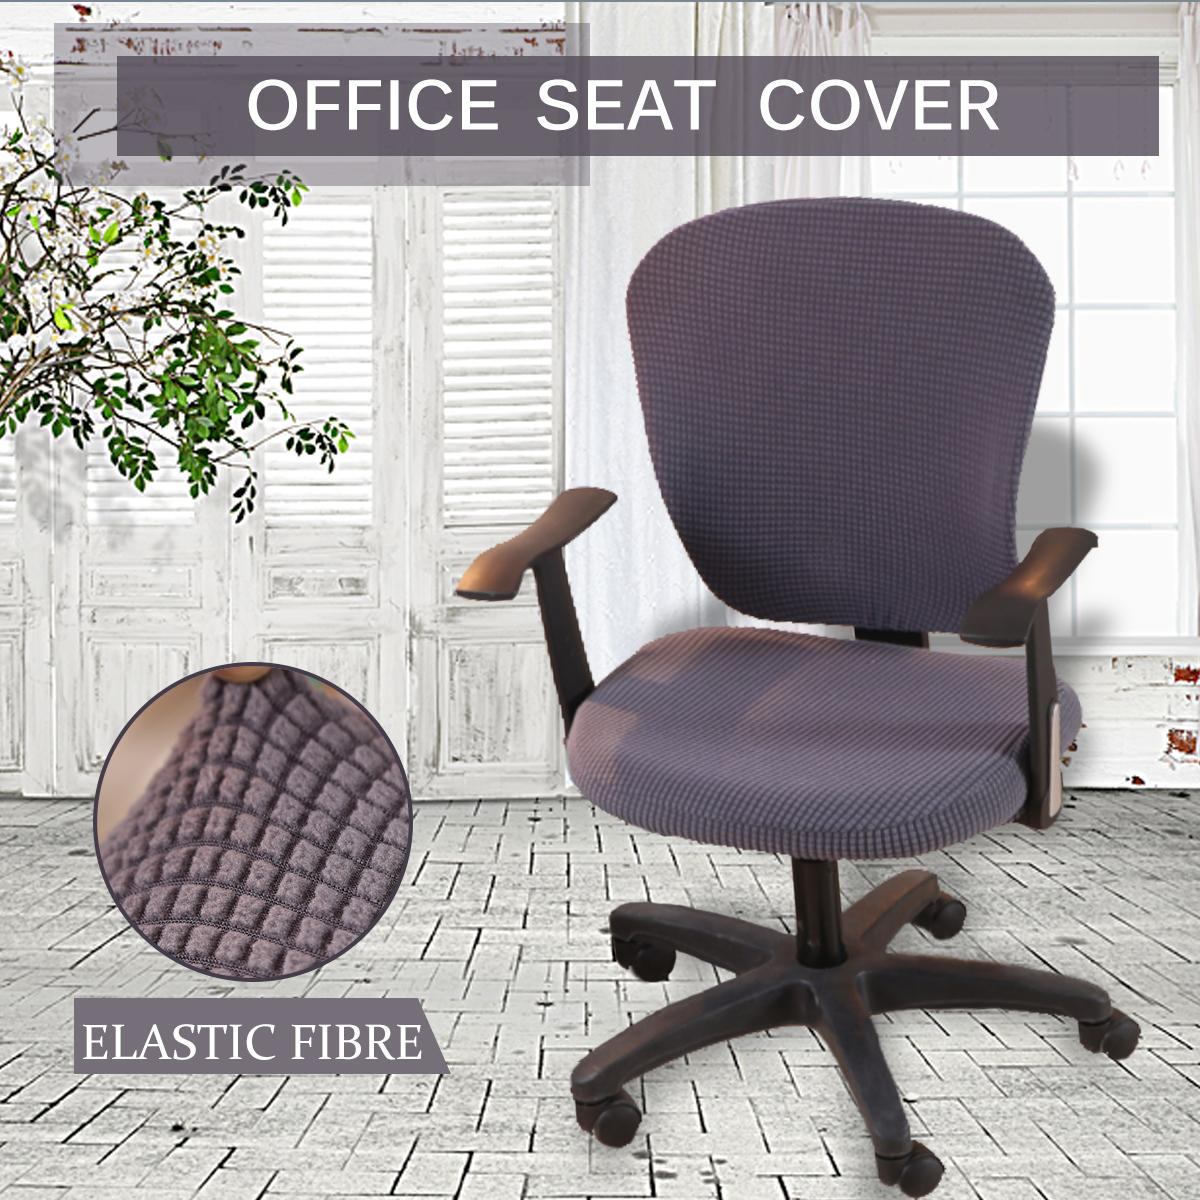 Buy Cacao Home Office Chairs At Best Prices Online In Bangladesh Daraz Com Bd